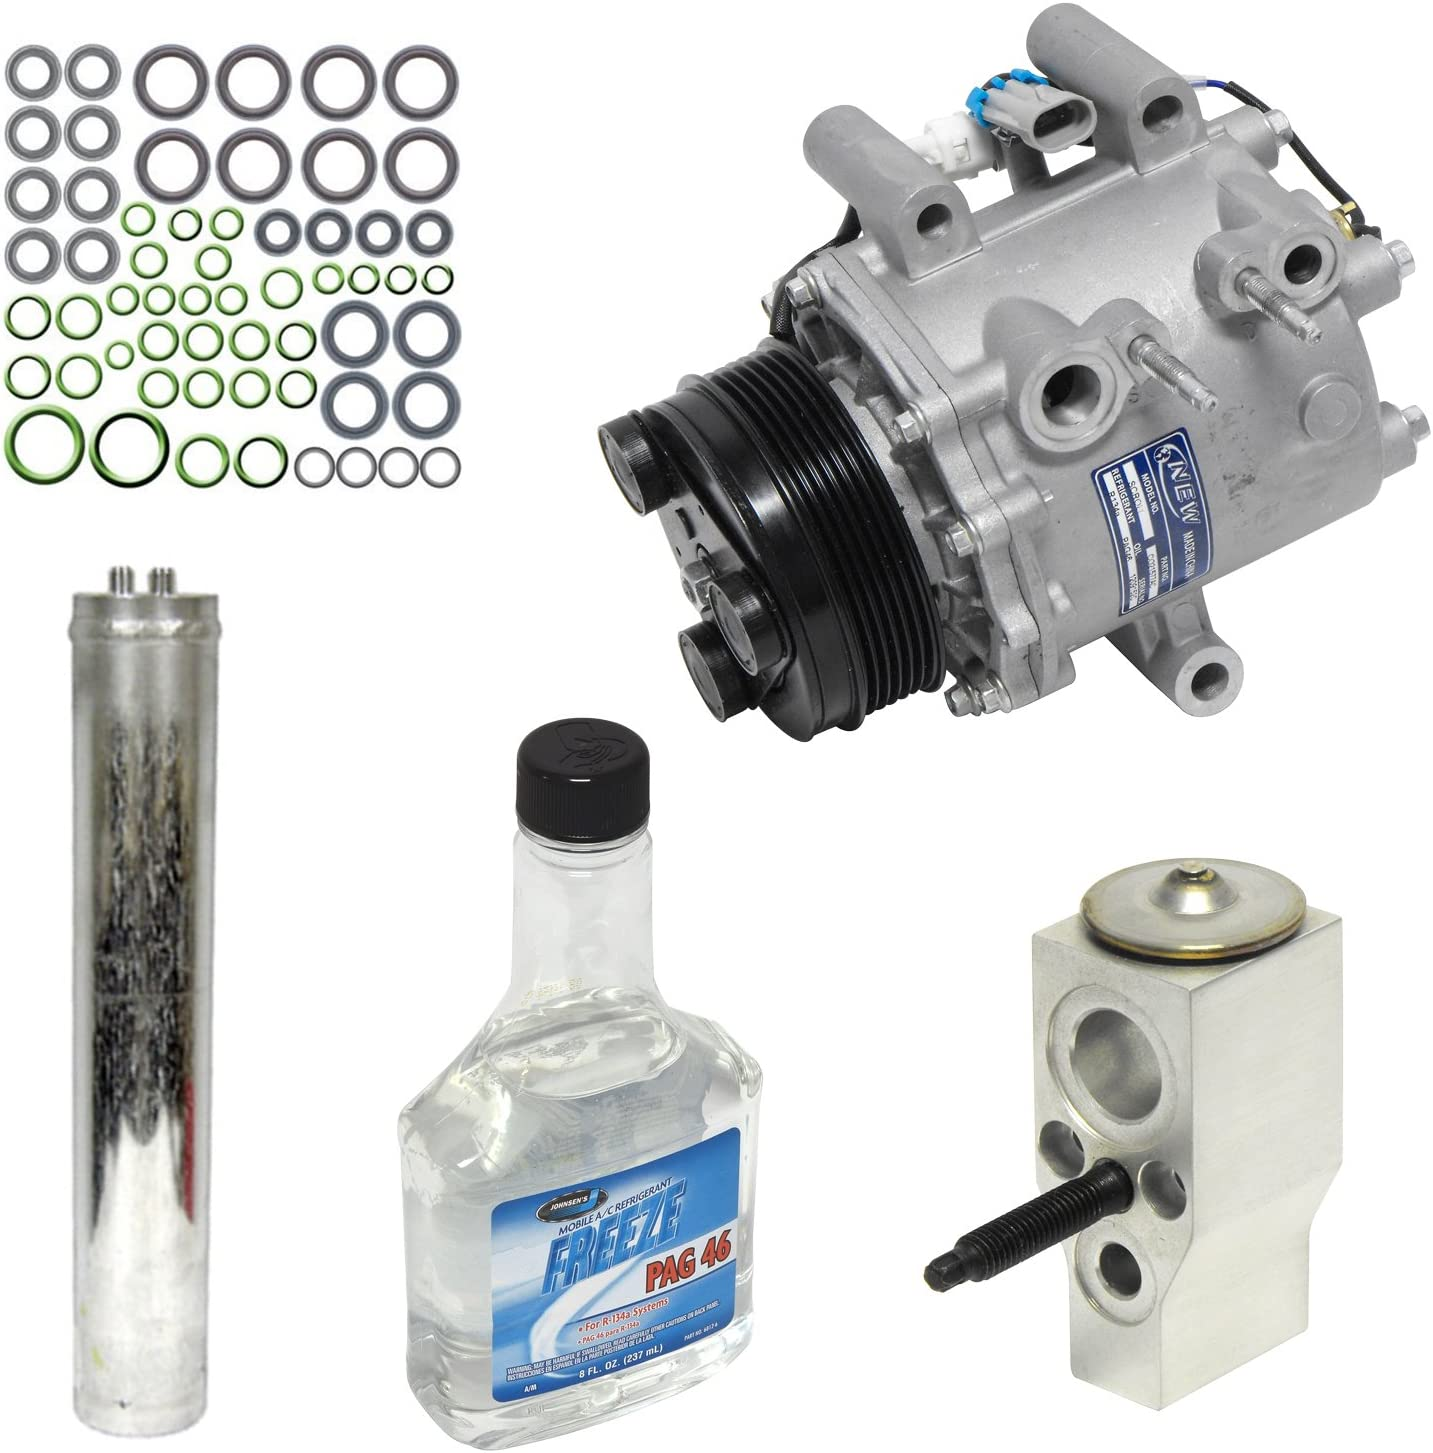 Universal Air Conditioner KT 3791 A//C Compressor and Component Kit